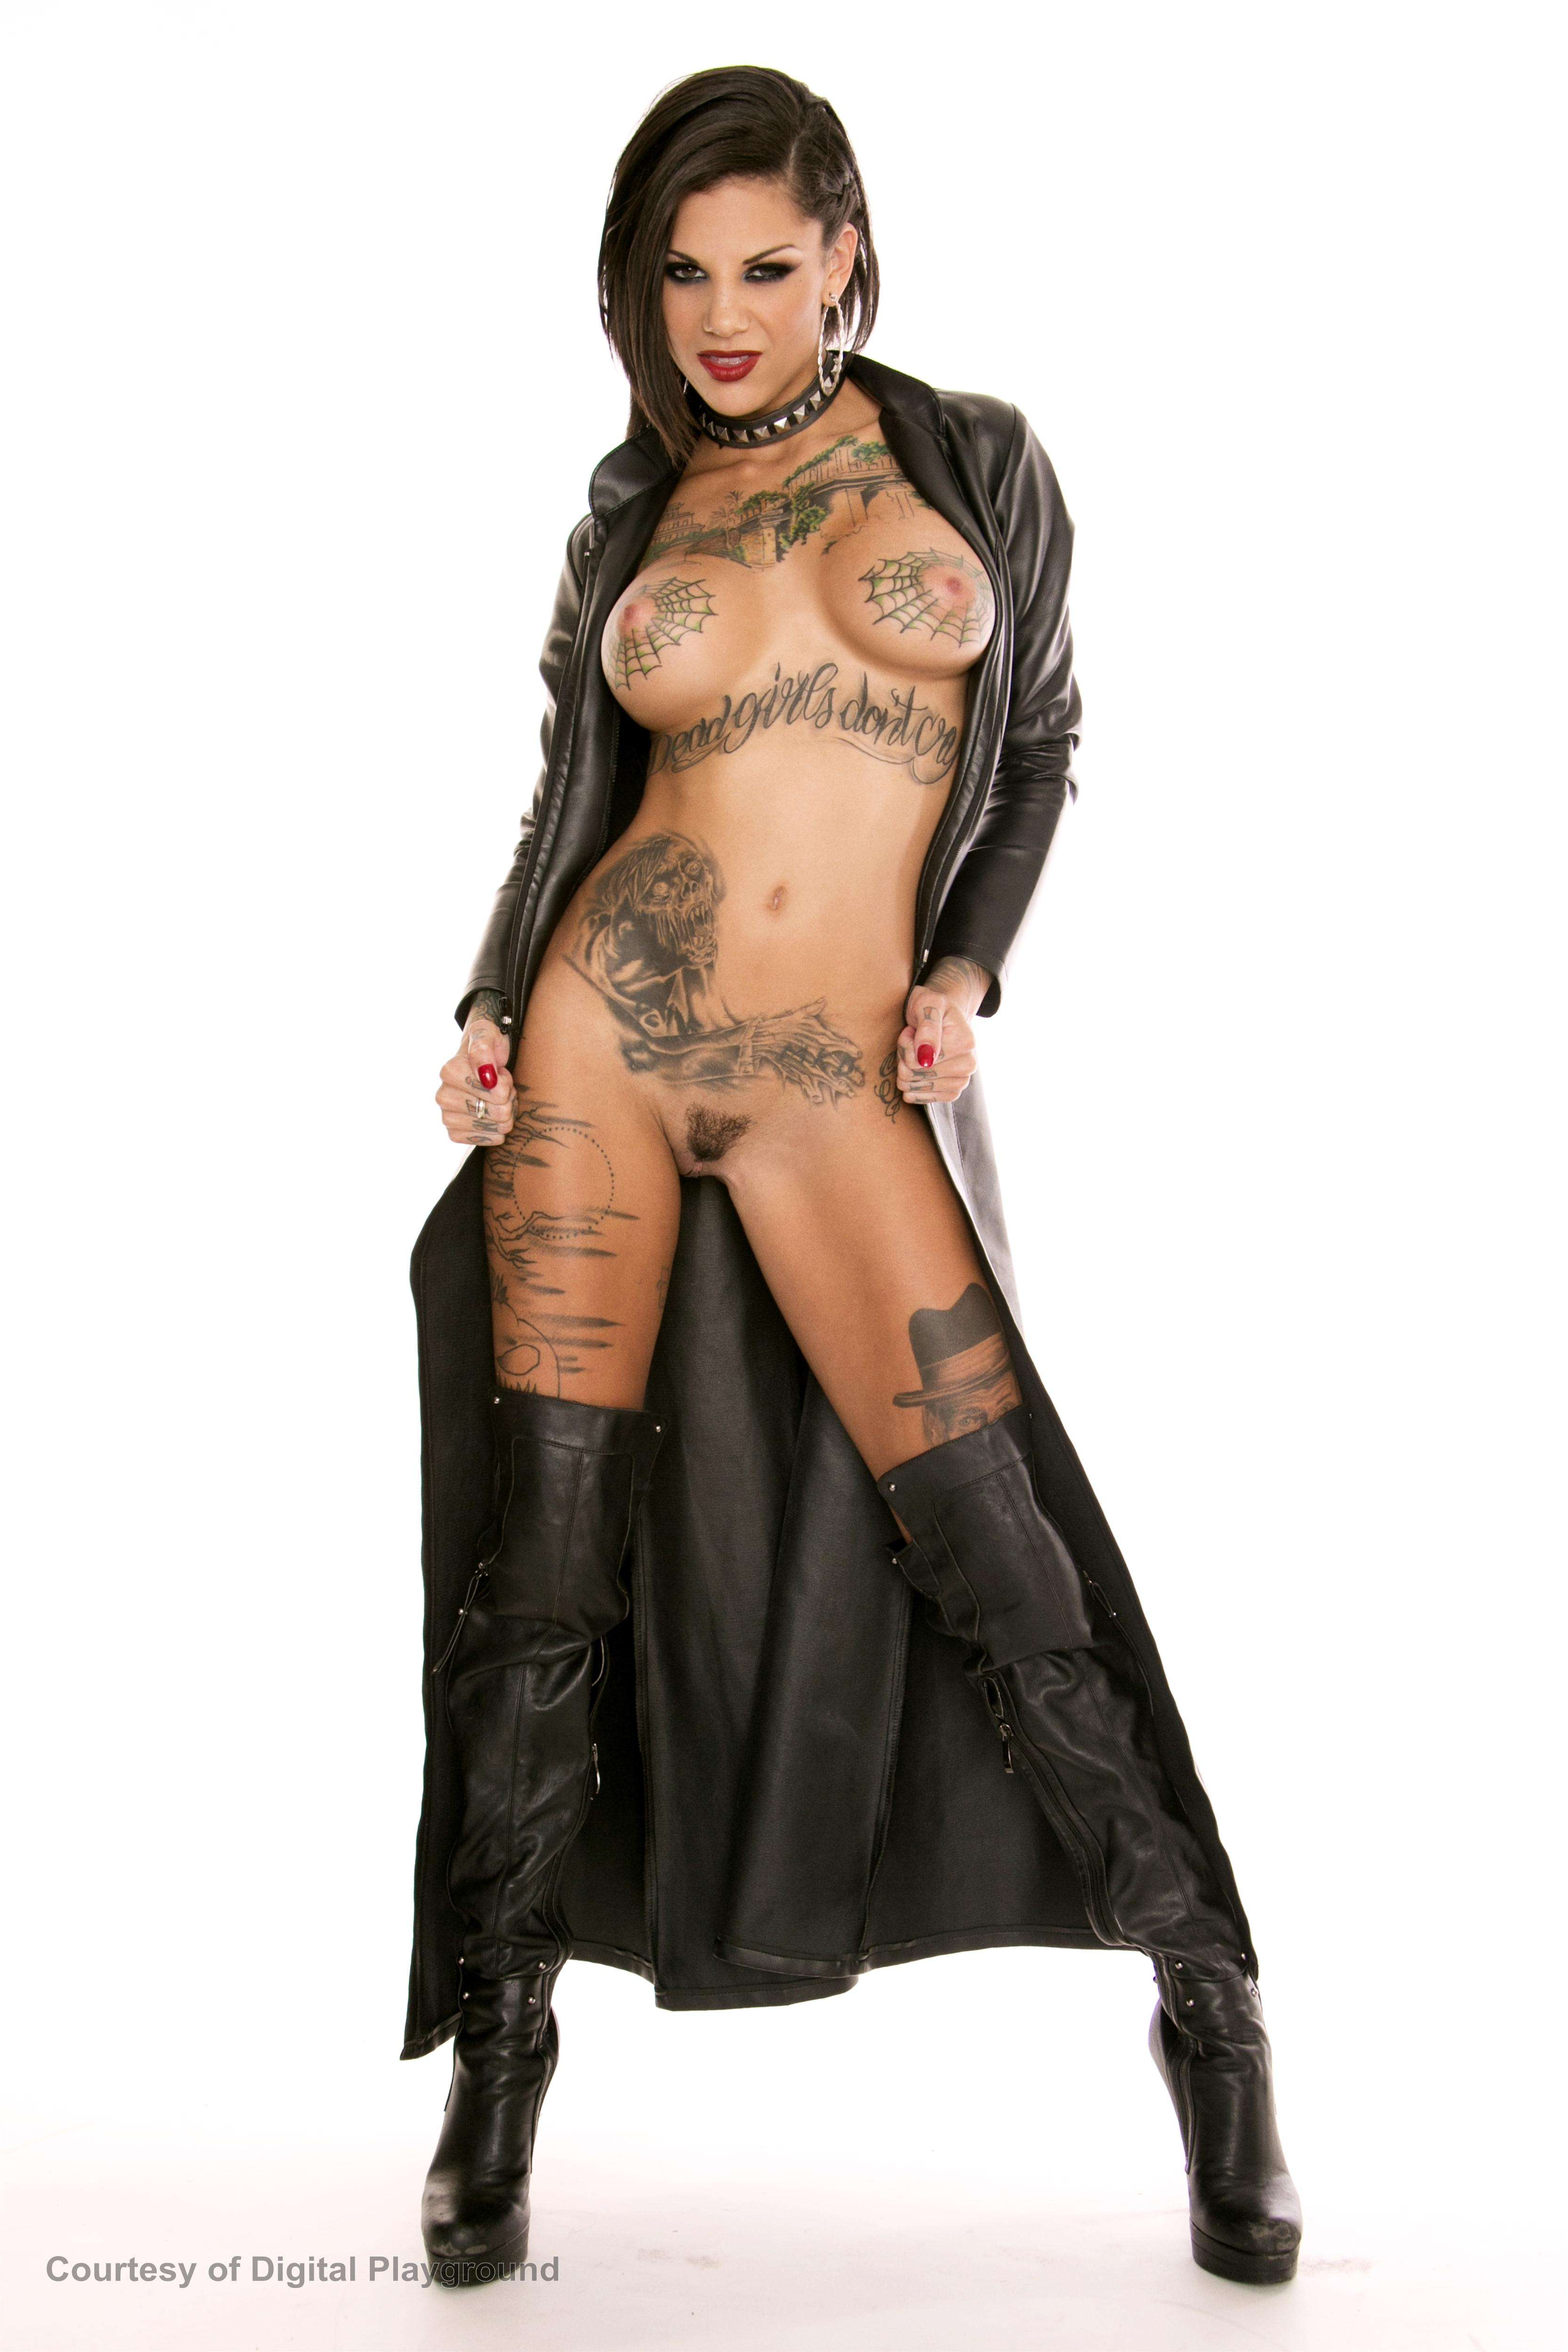 Bonnie Rotten <b>bonnie rotten</b> says 'guten tag' to germany and switzerland <b></b>